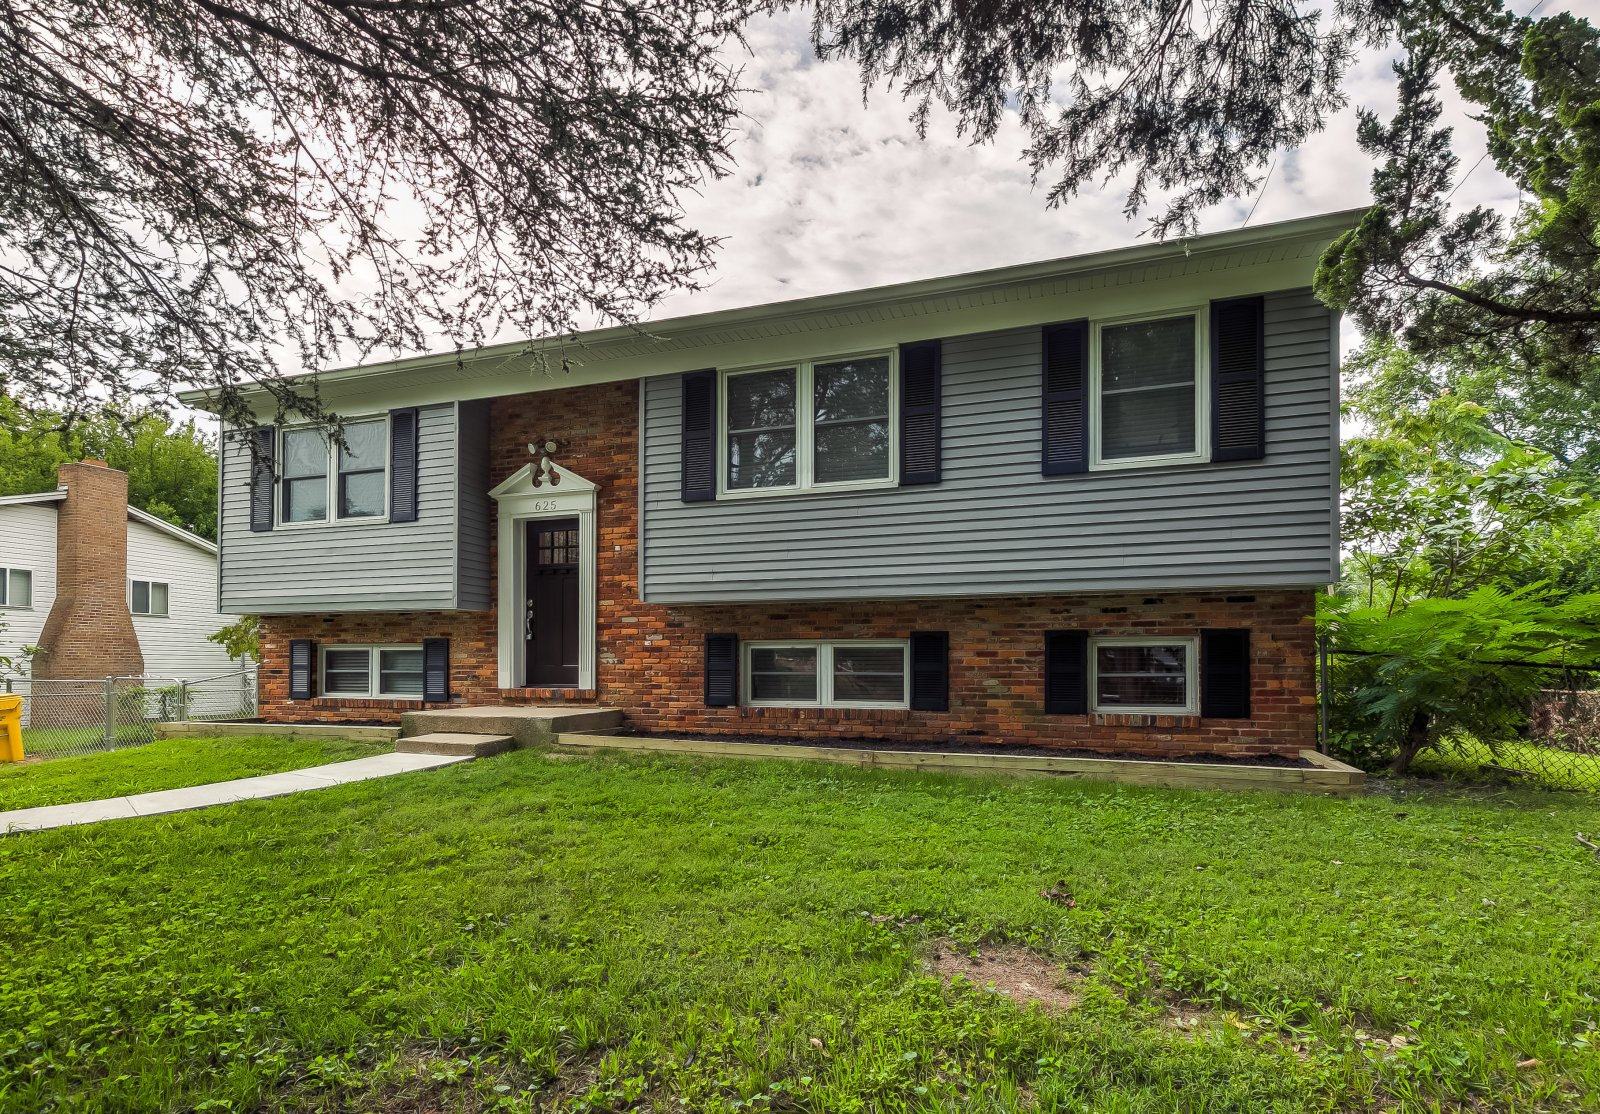 Our listing at 625 Edwards Rd, Annapolis, MD 21409